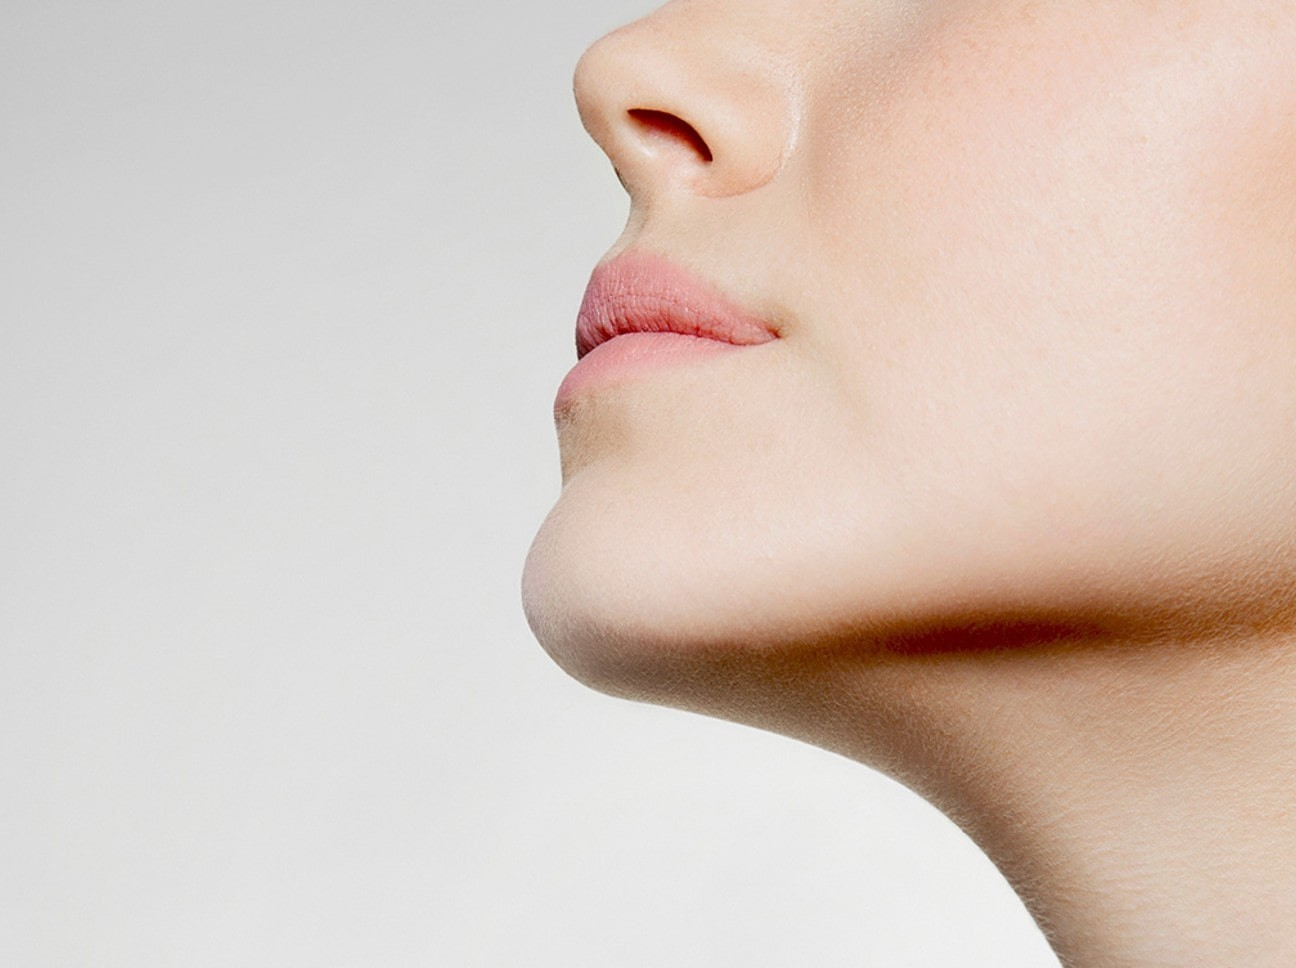 close up of a persons chin and neck.